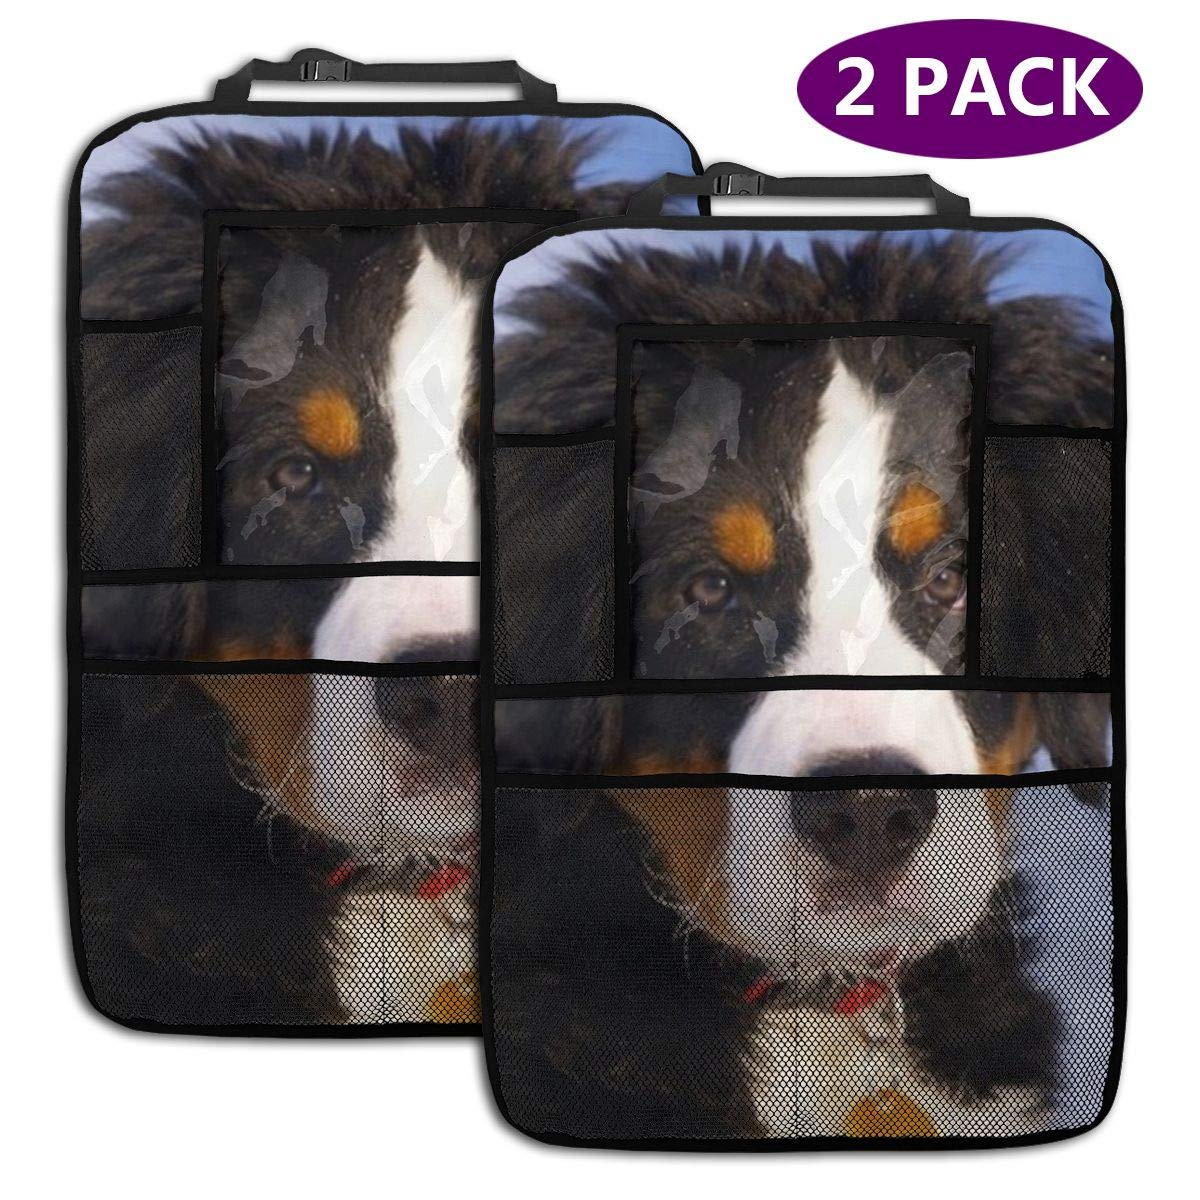 QF6FEICHAN Bernese Mountain Dog Car Seat Back Protectors with Storage Pockets Kick Mats Accessories for Kids and Toddlers by QF6FEICHAN